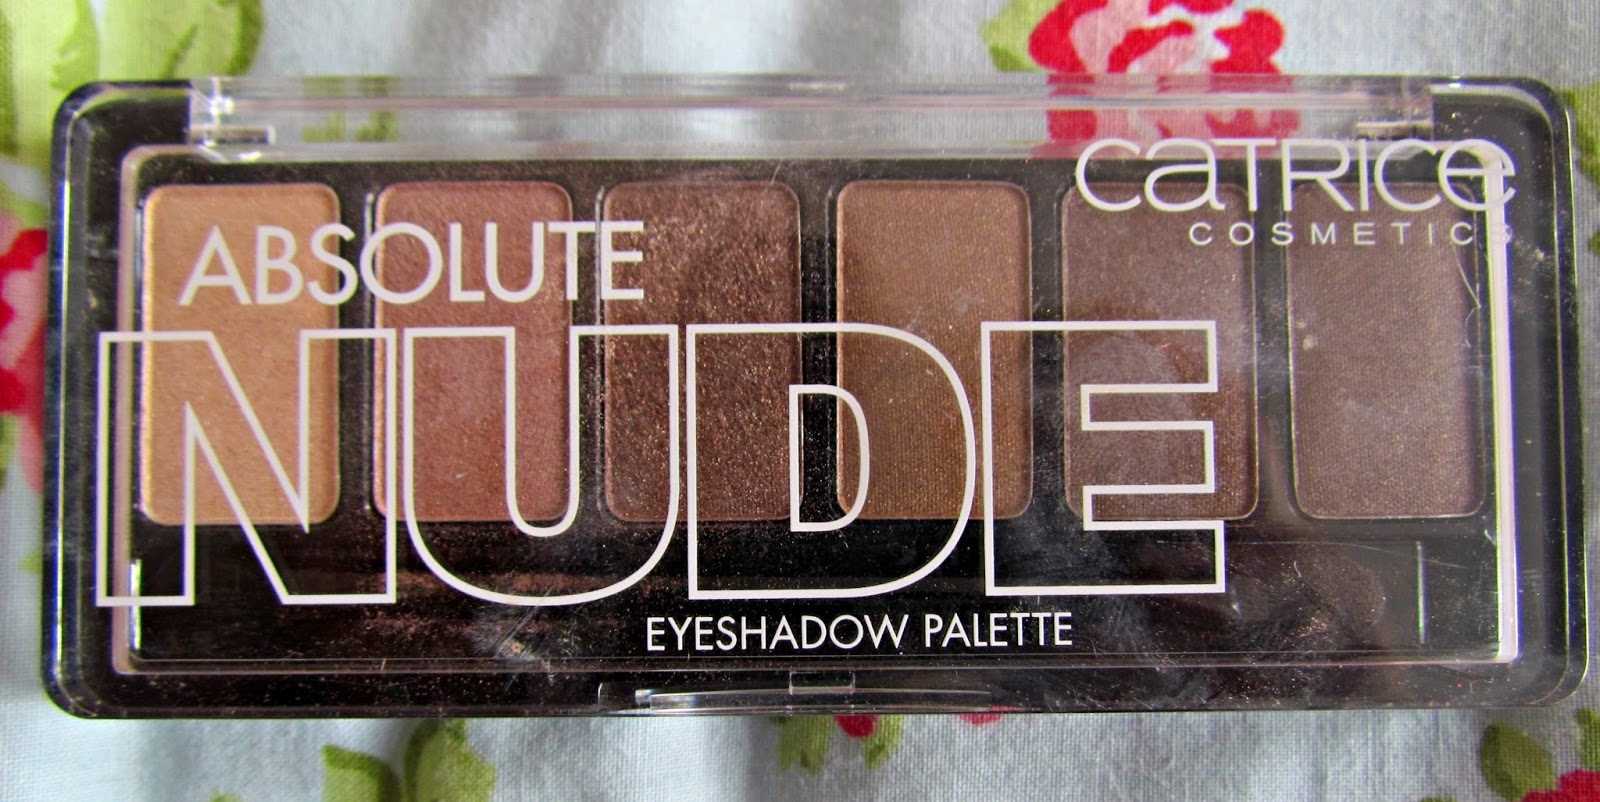 Catrice 010 All Nude - Absolute Nude Eyeshadow Palette